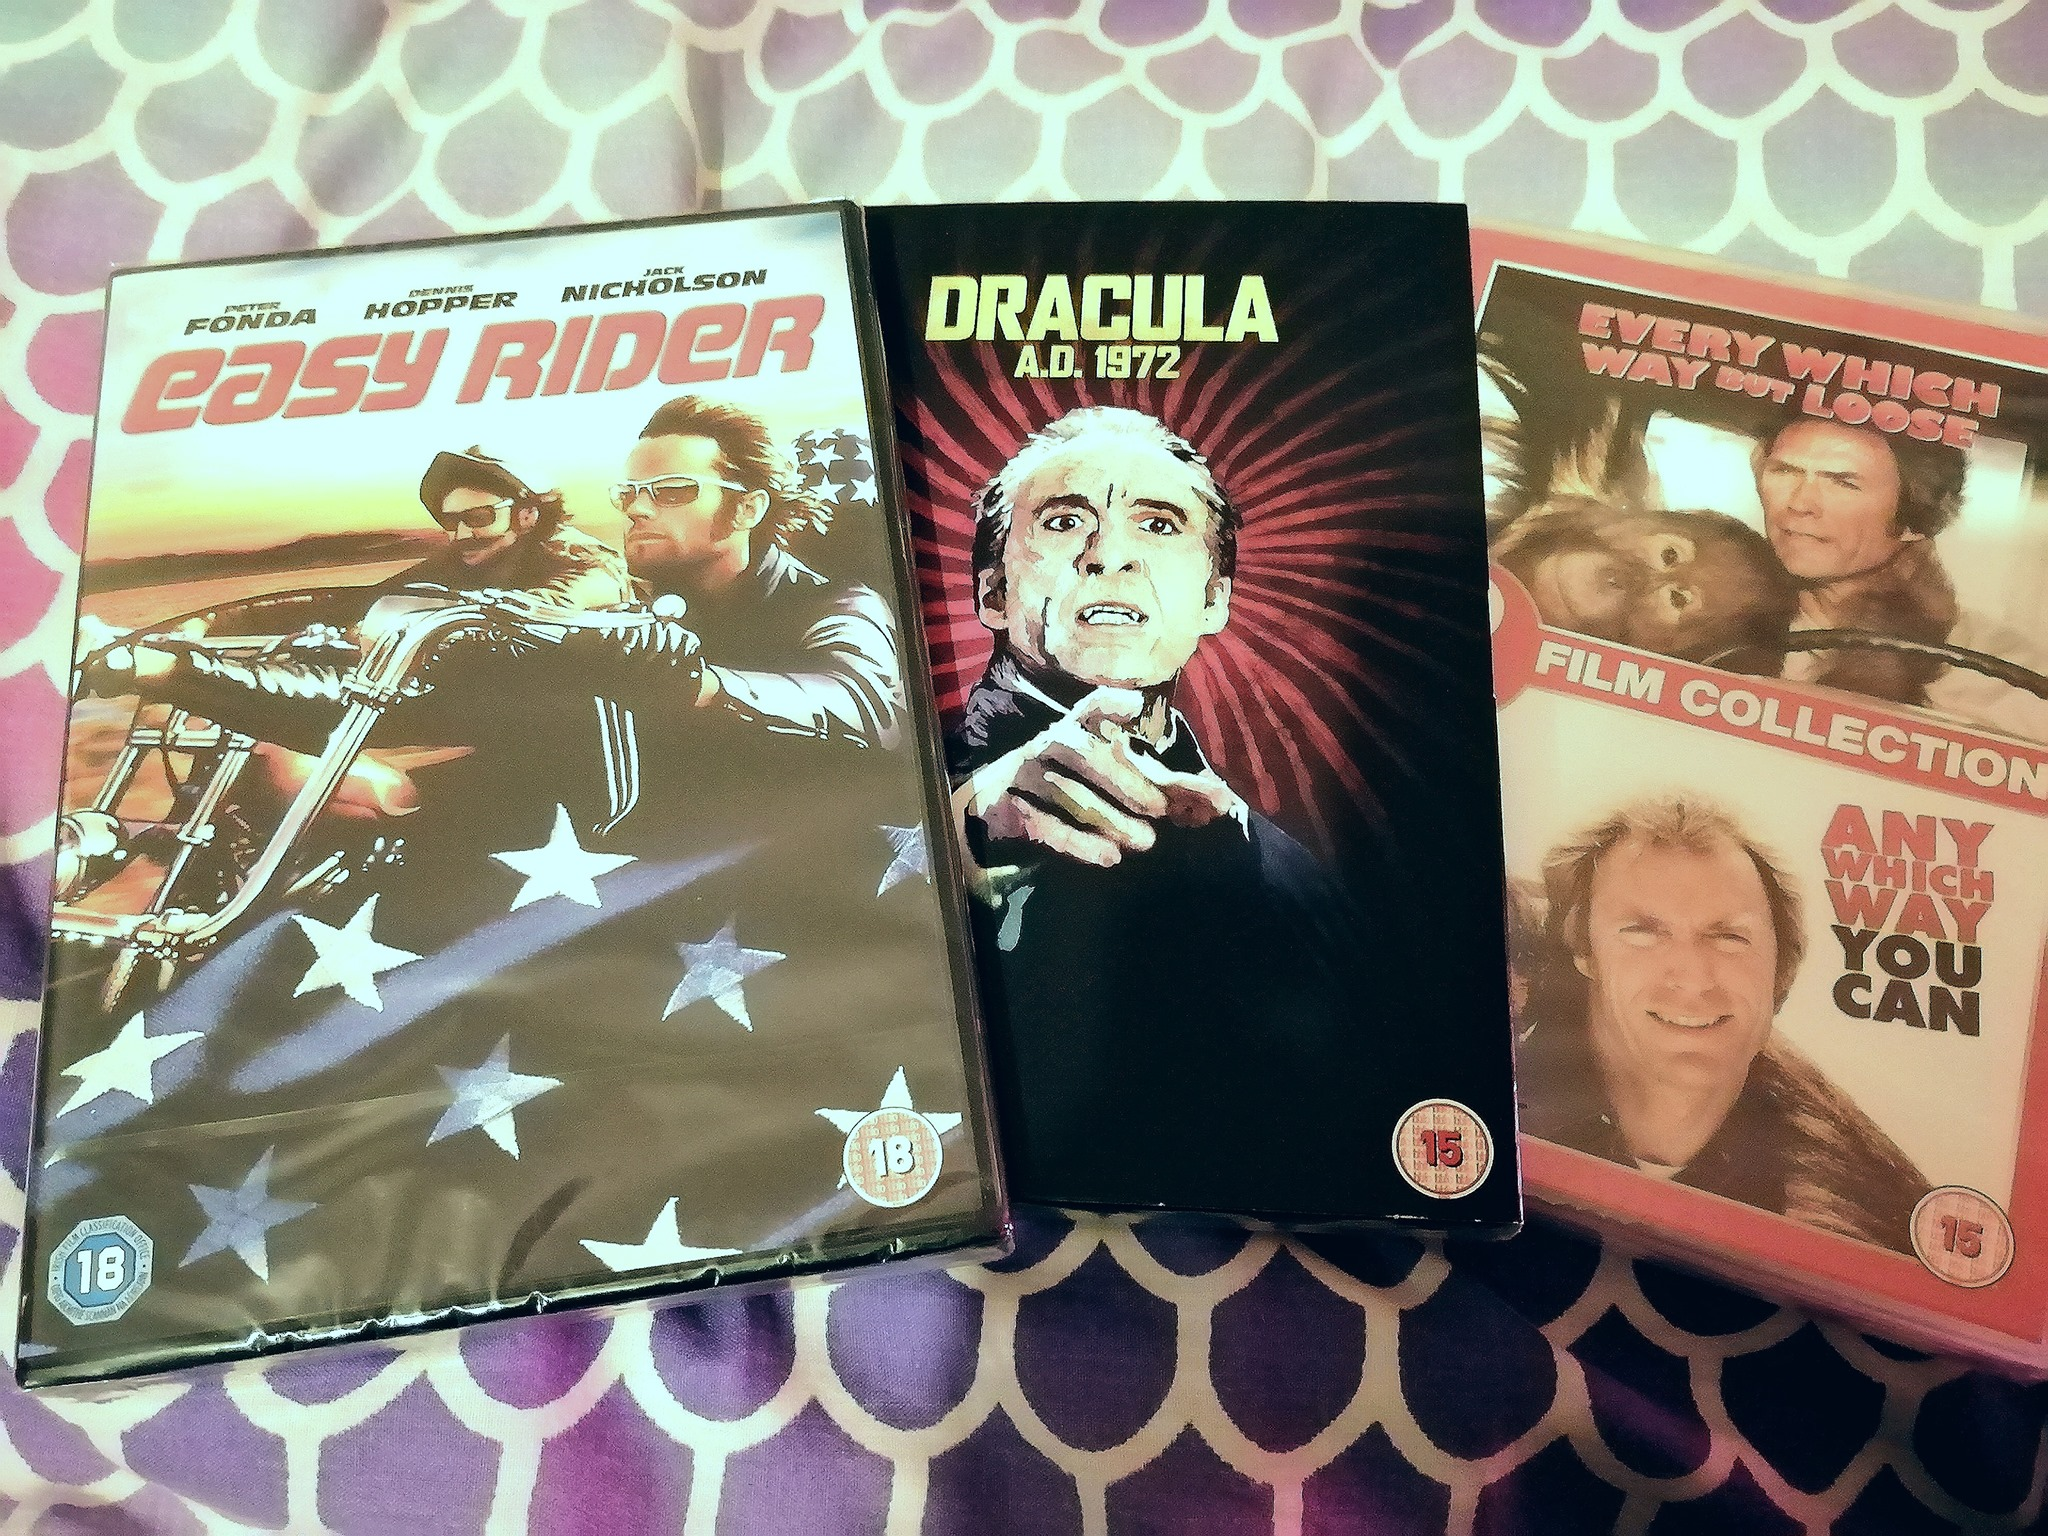 DVD collection Road Trip movies and Dracula movie